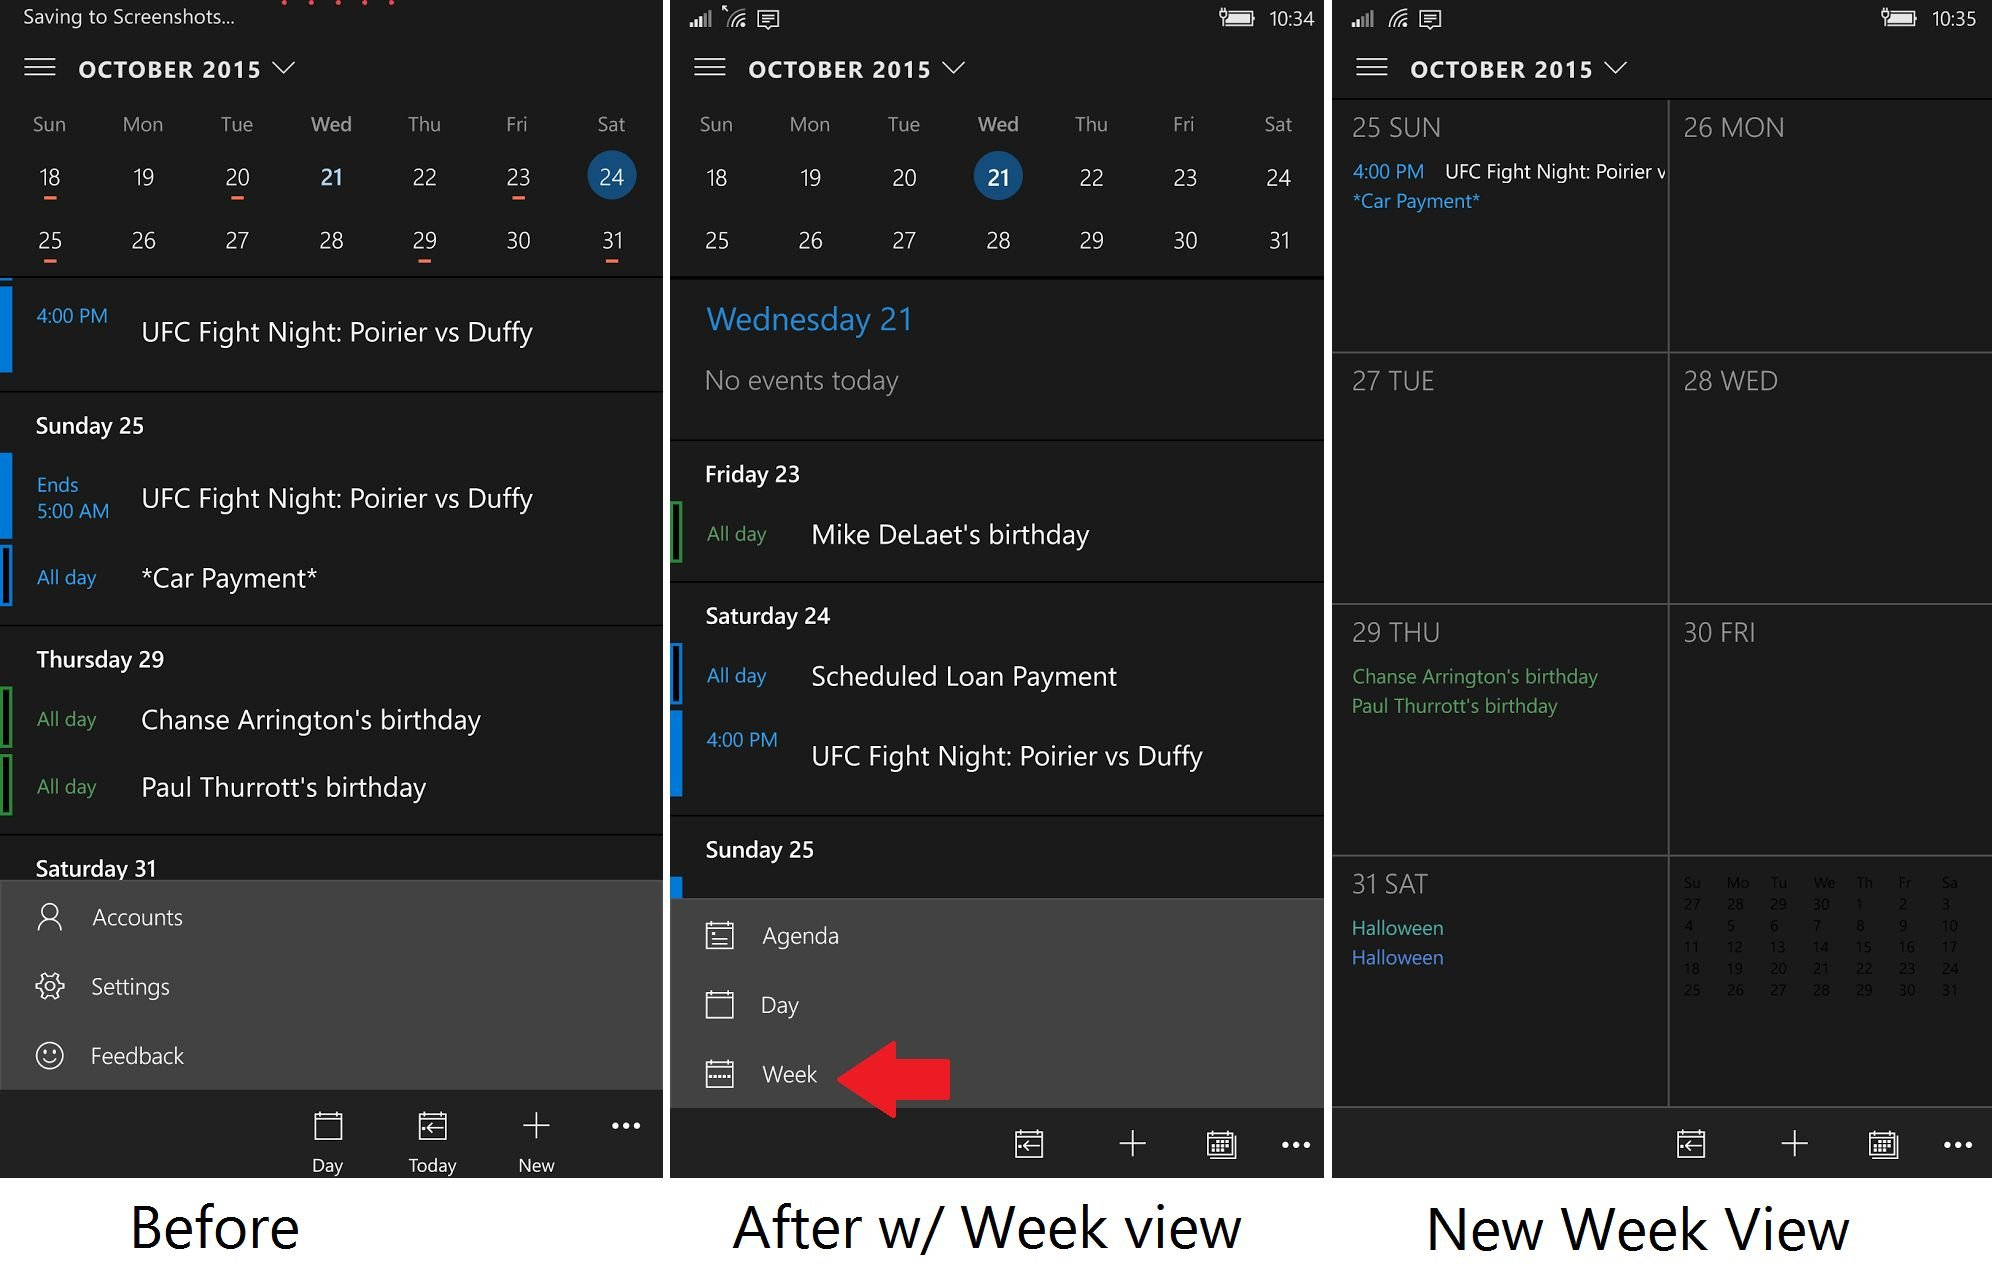 How To Set Up A Public Calendar In Outlook 2010 Link Your Calendar To Outlook Using An Ical Feed 100 Outlook 2007 Dashboard Calendar And Introducing